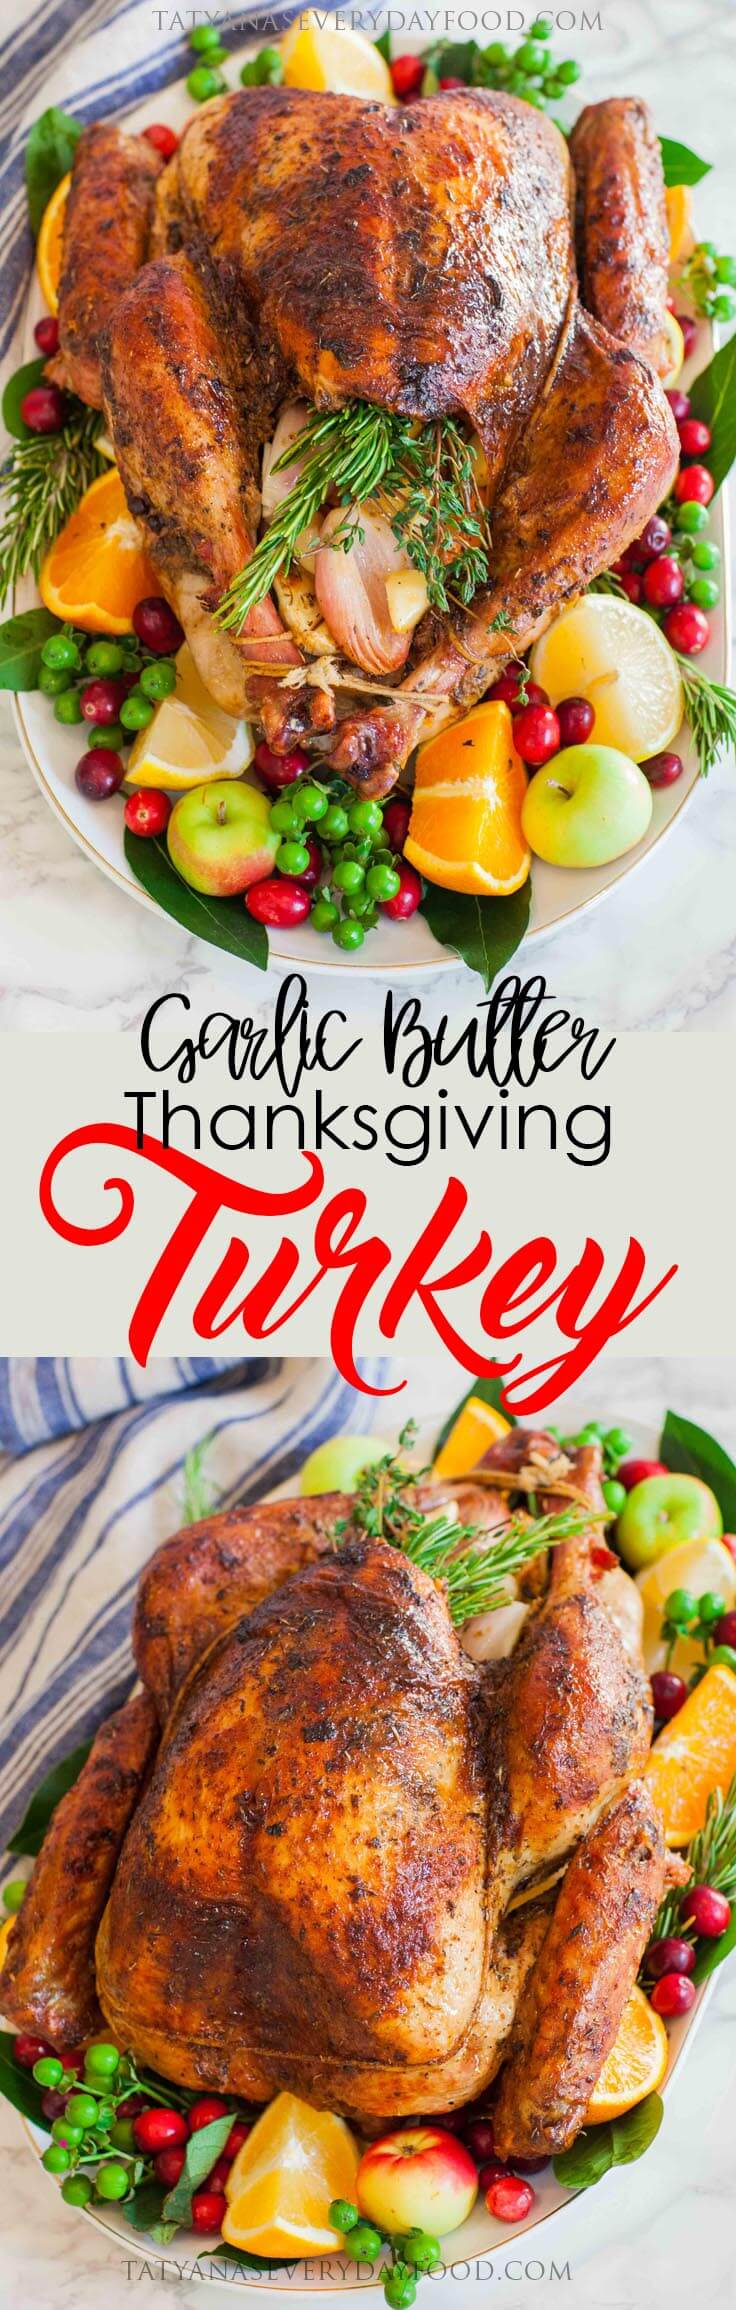 Garlic butter thanksgiving turkey with gravy tatyanas everyday food try my kale pomegranate salad httpstatyanaseverydayfoodrecipe itemskale pom salad forumfinder Images